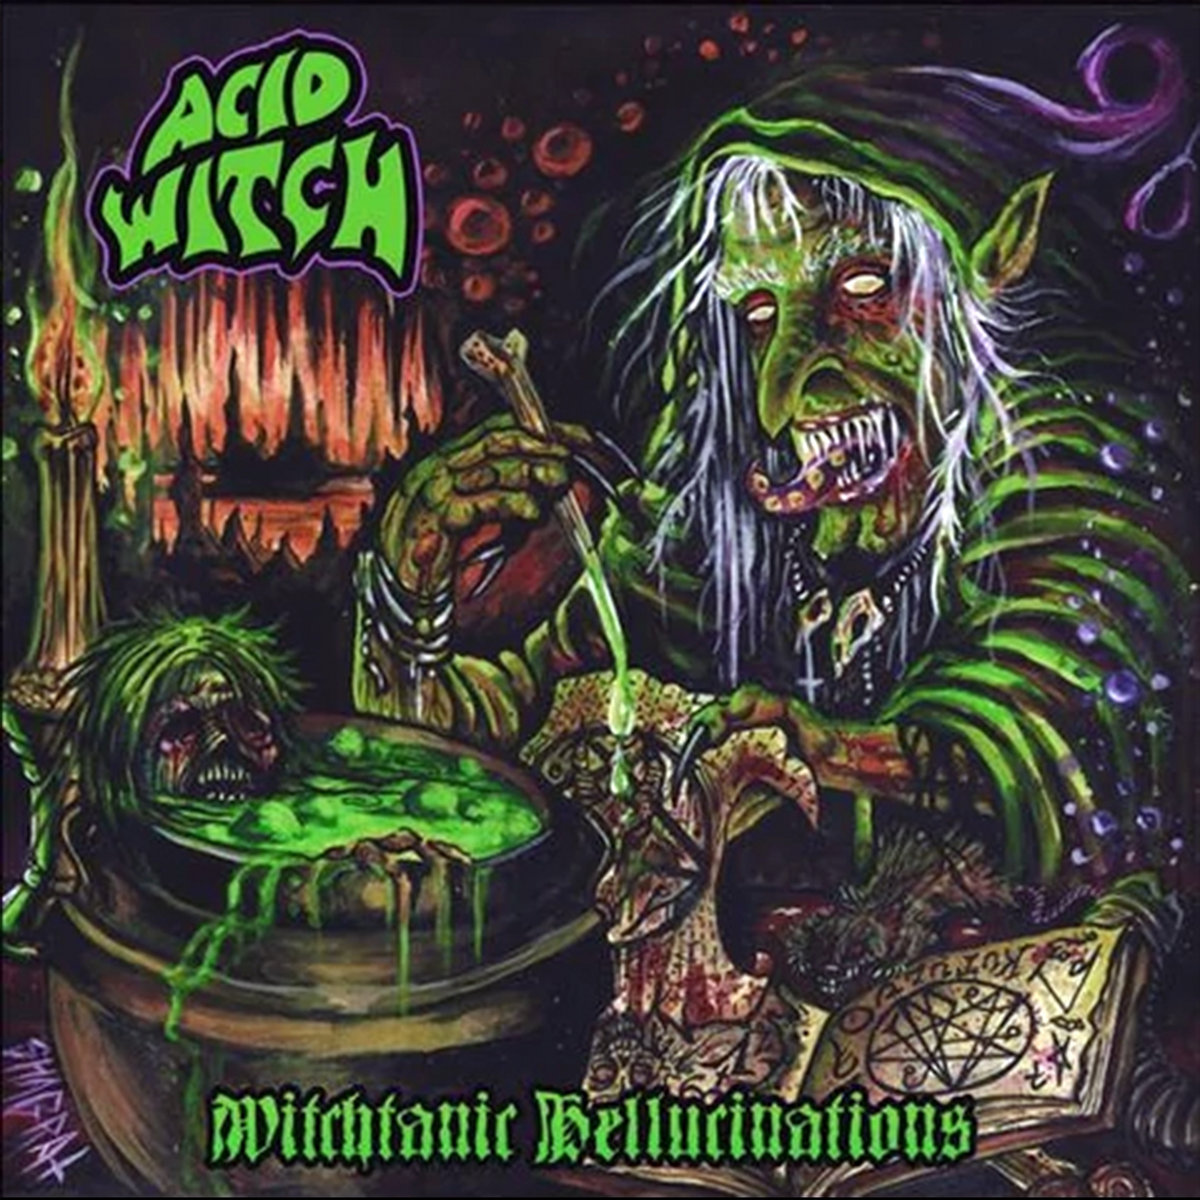 Witchtanic Hellucinations | Acid Witch